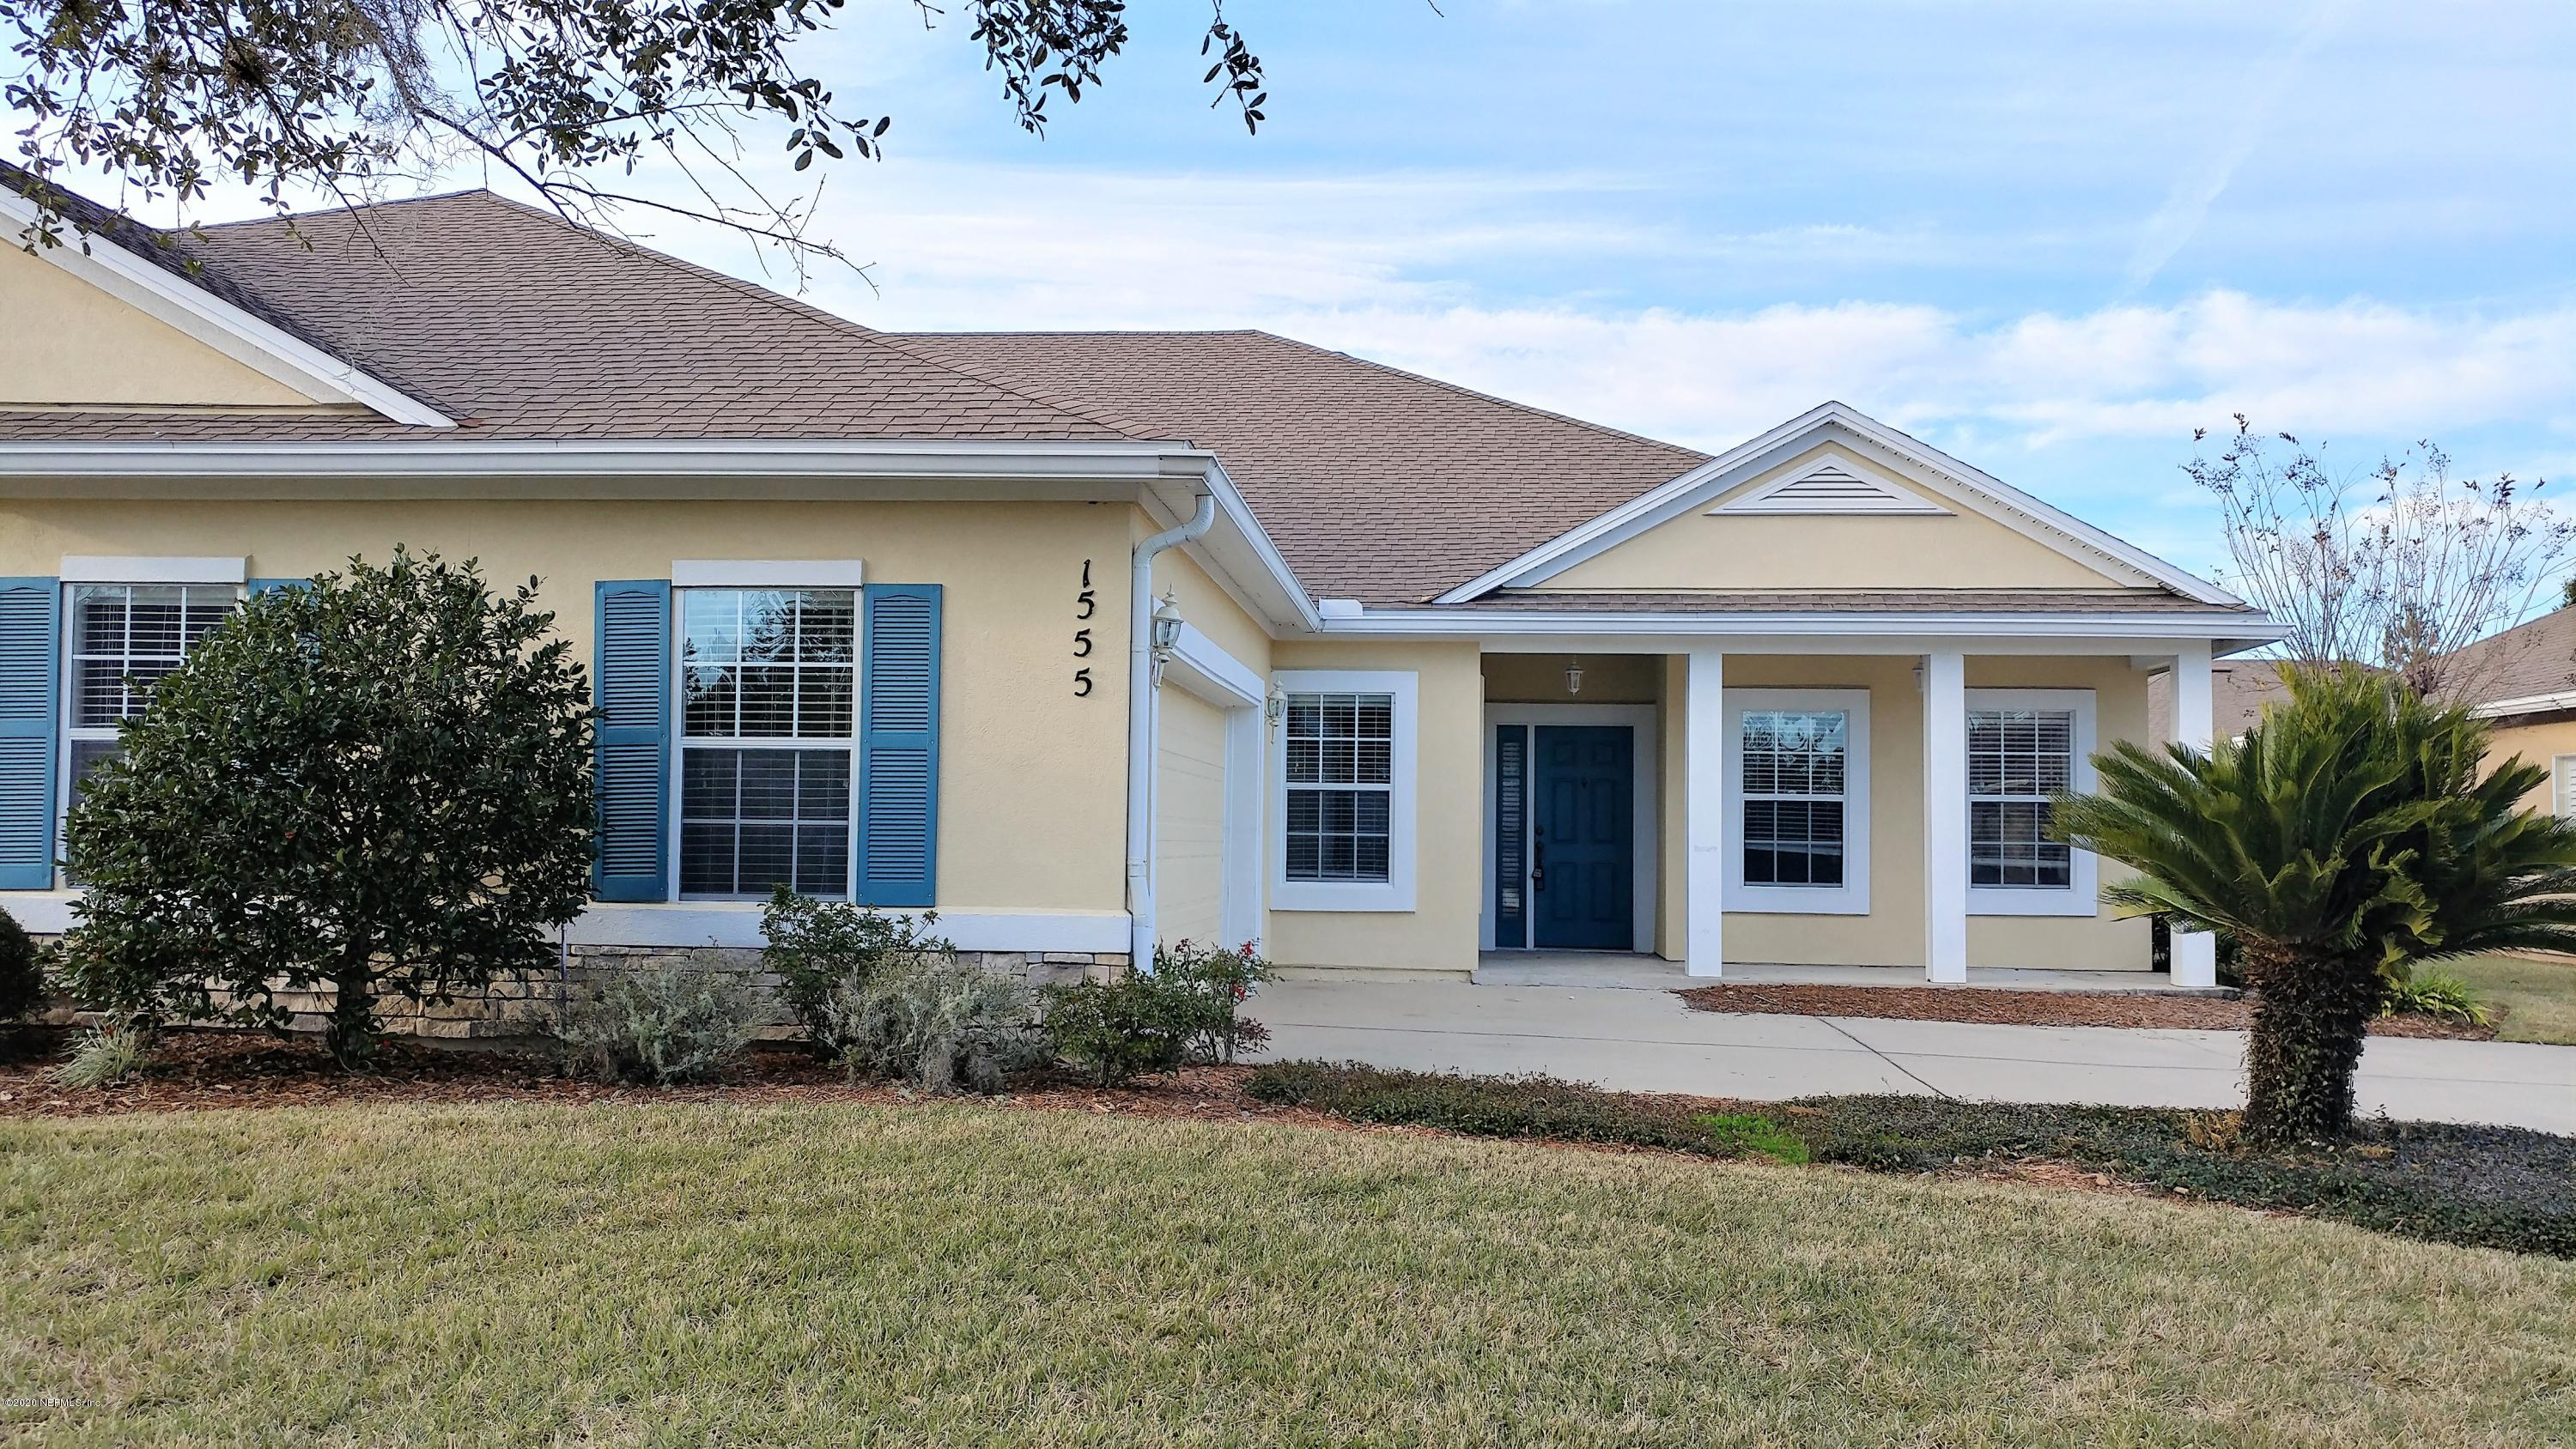 Photo for 1555 Calming Water DR, FLEMING ISLAND, FL 32003 (MLS # 1043391)